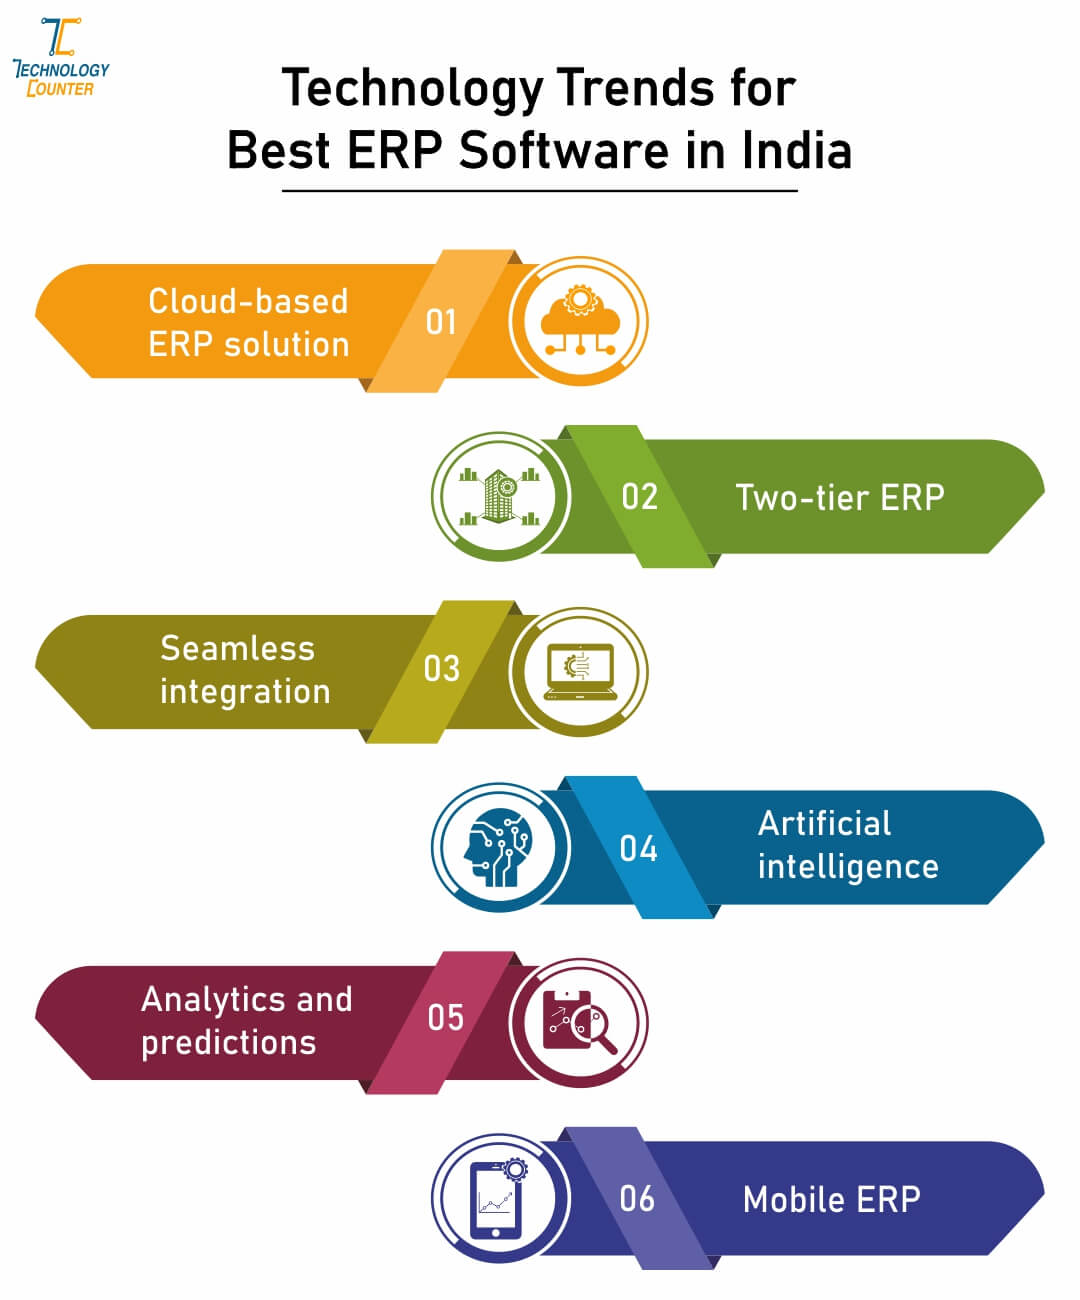 Technologies Trends for Best ERP Software in India